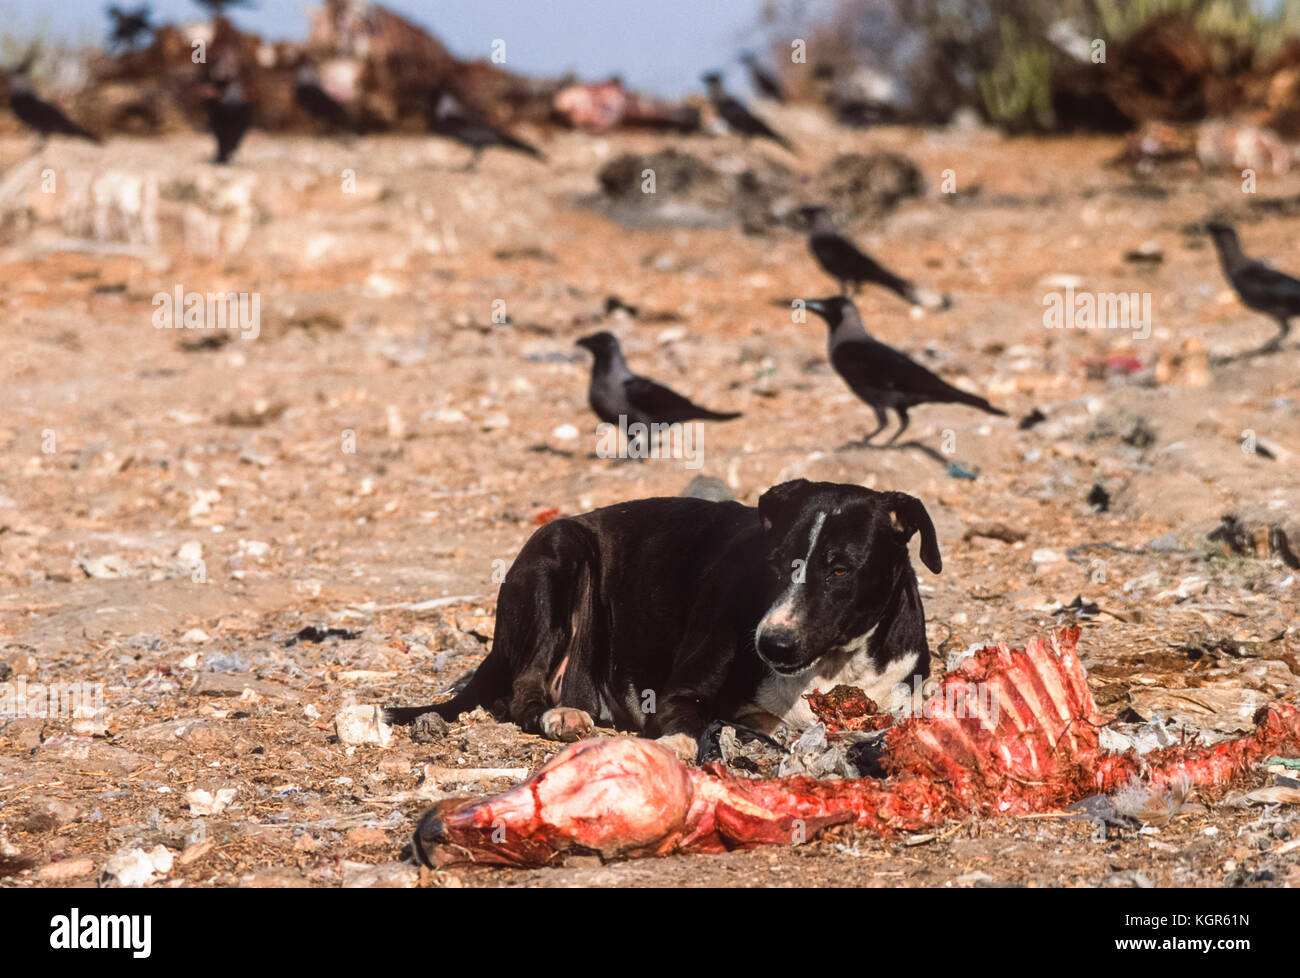 Feral dog, (Canis familiaris or Canis lupus familiaris), scavenging on carcass at animal dump, Rajasthan, India - Stock Image